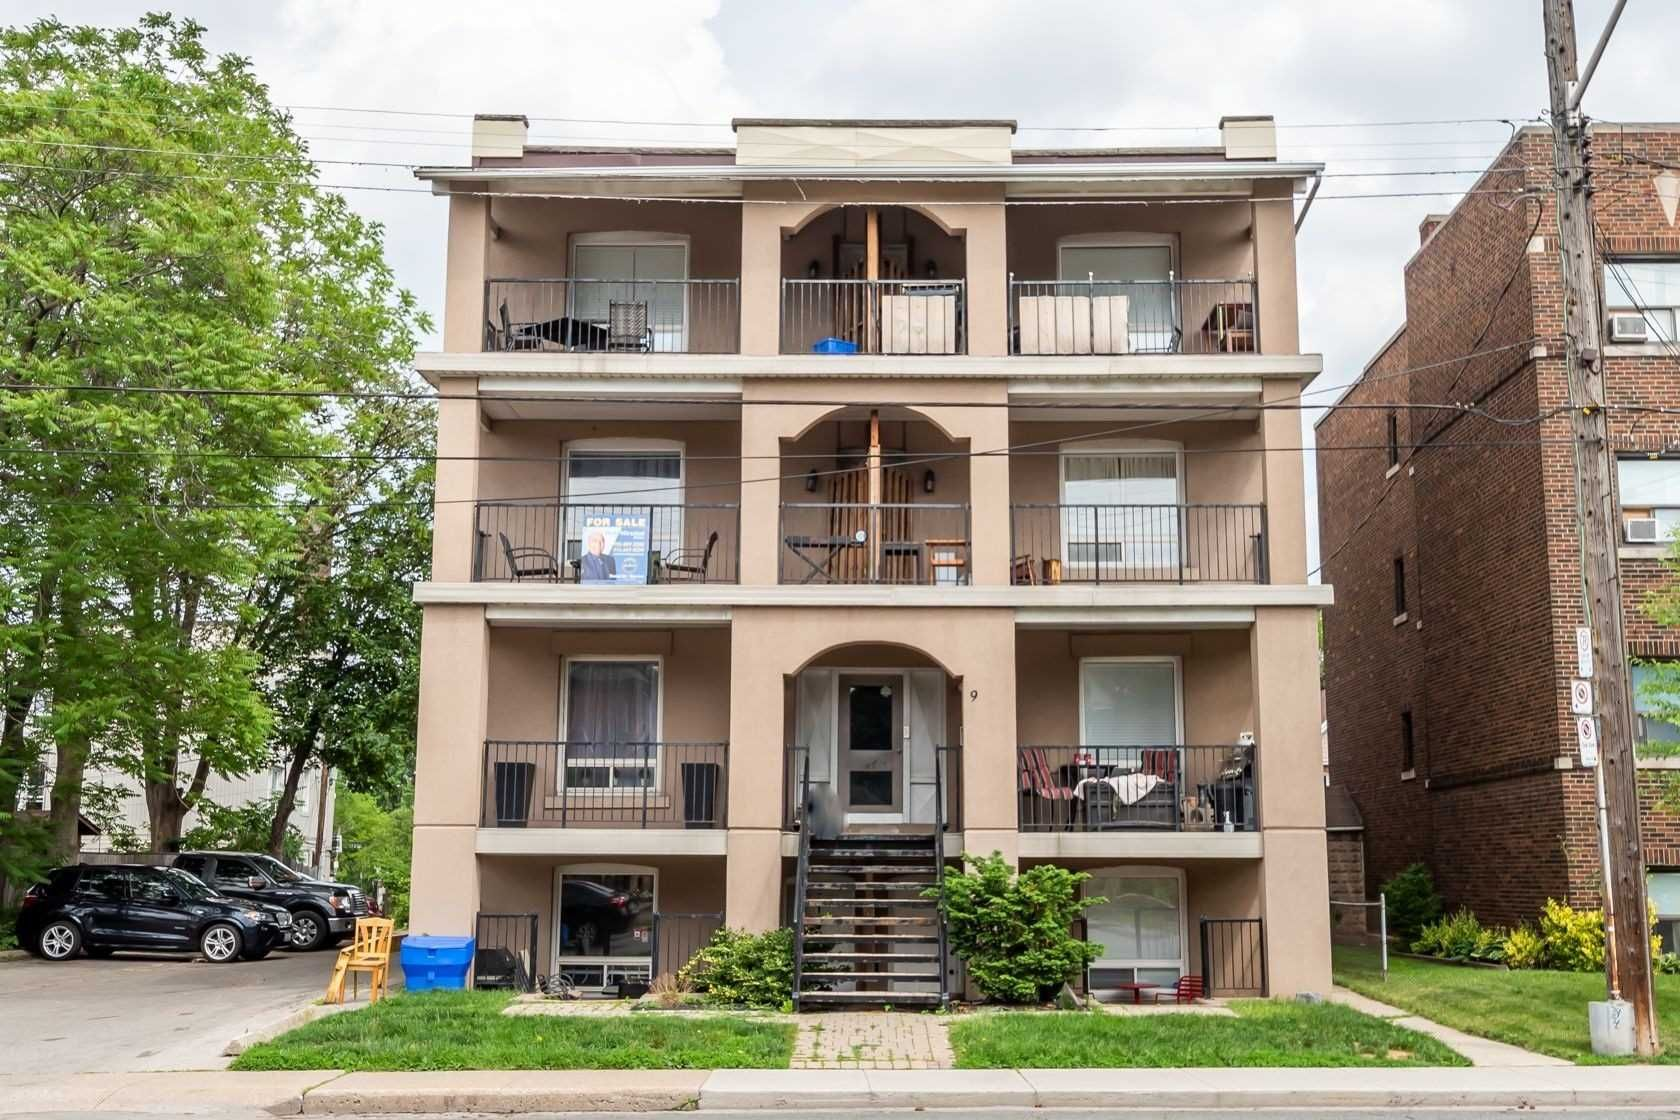 9 Sherman Ave S, unit # 5 for sale in Toronto - image #1